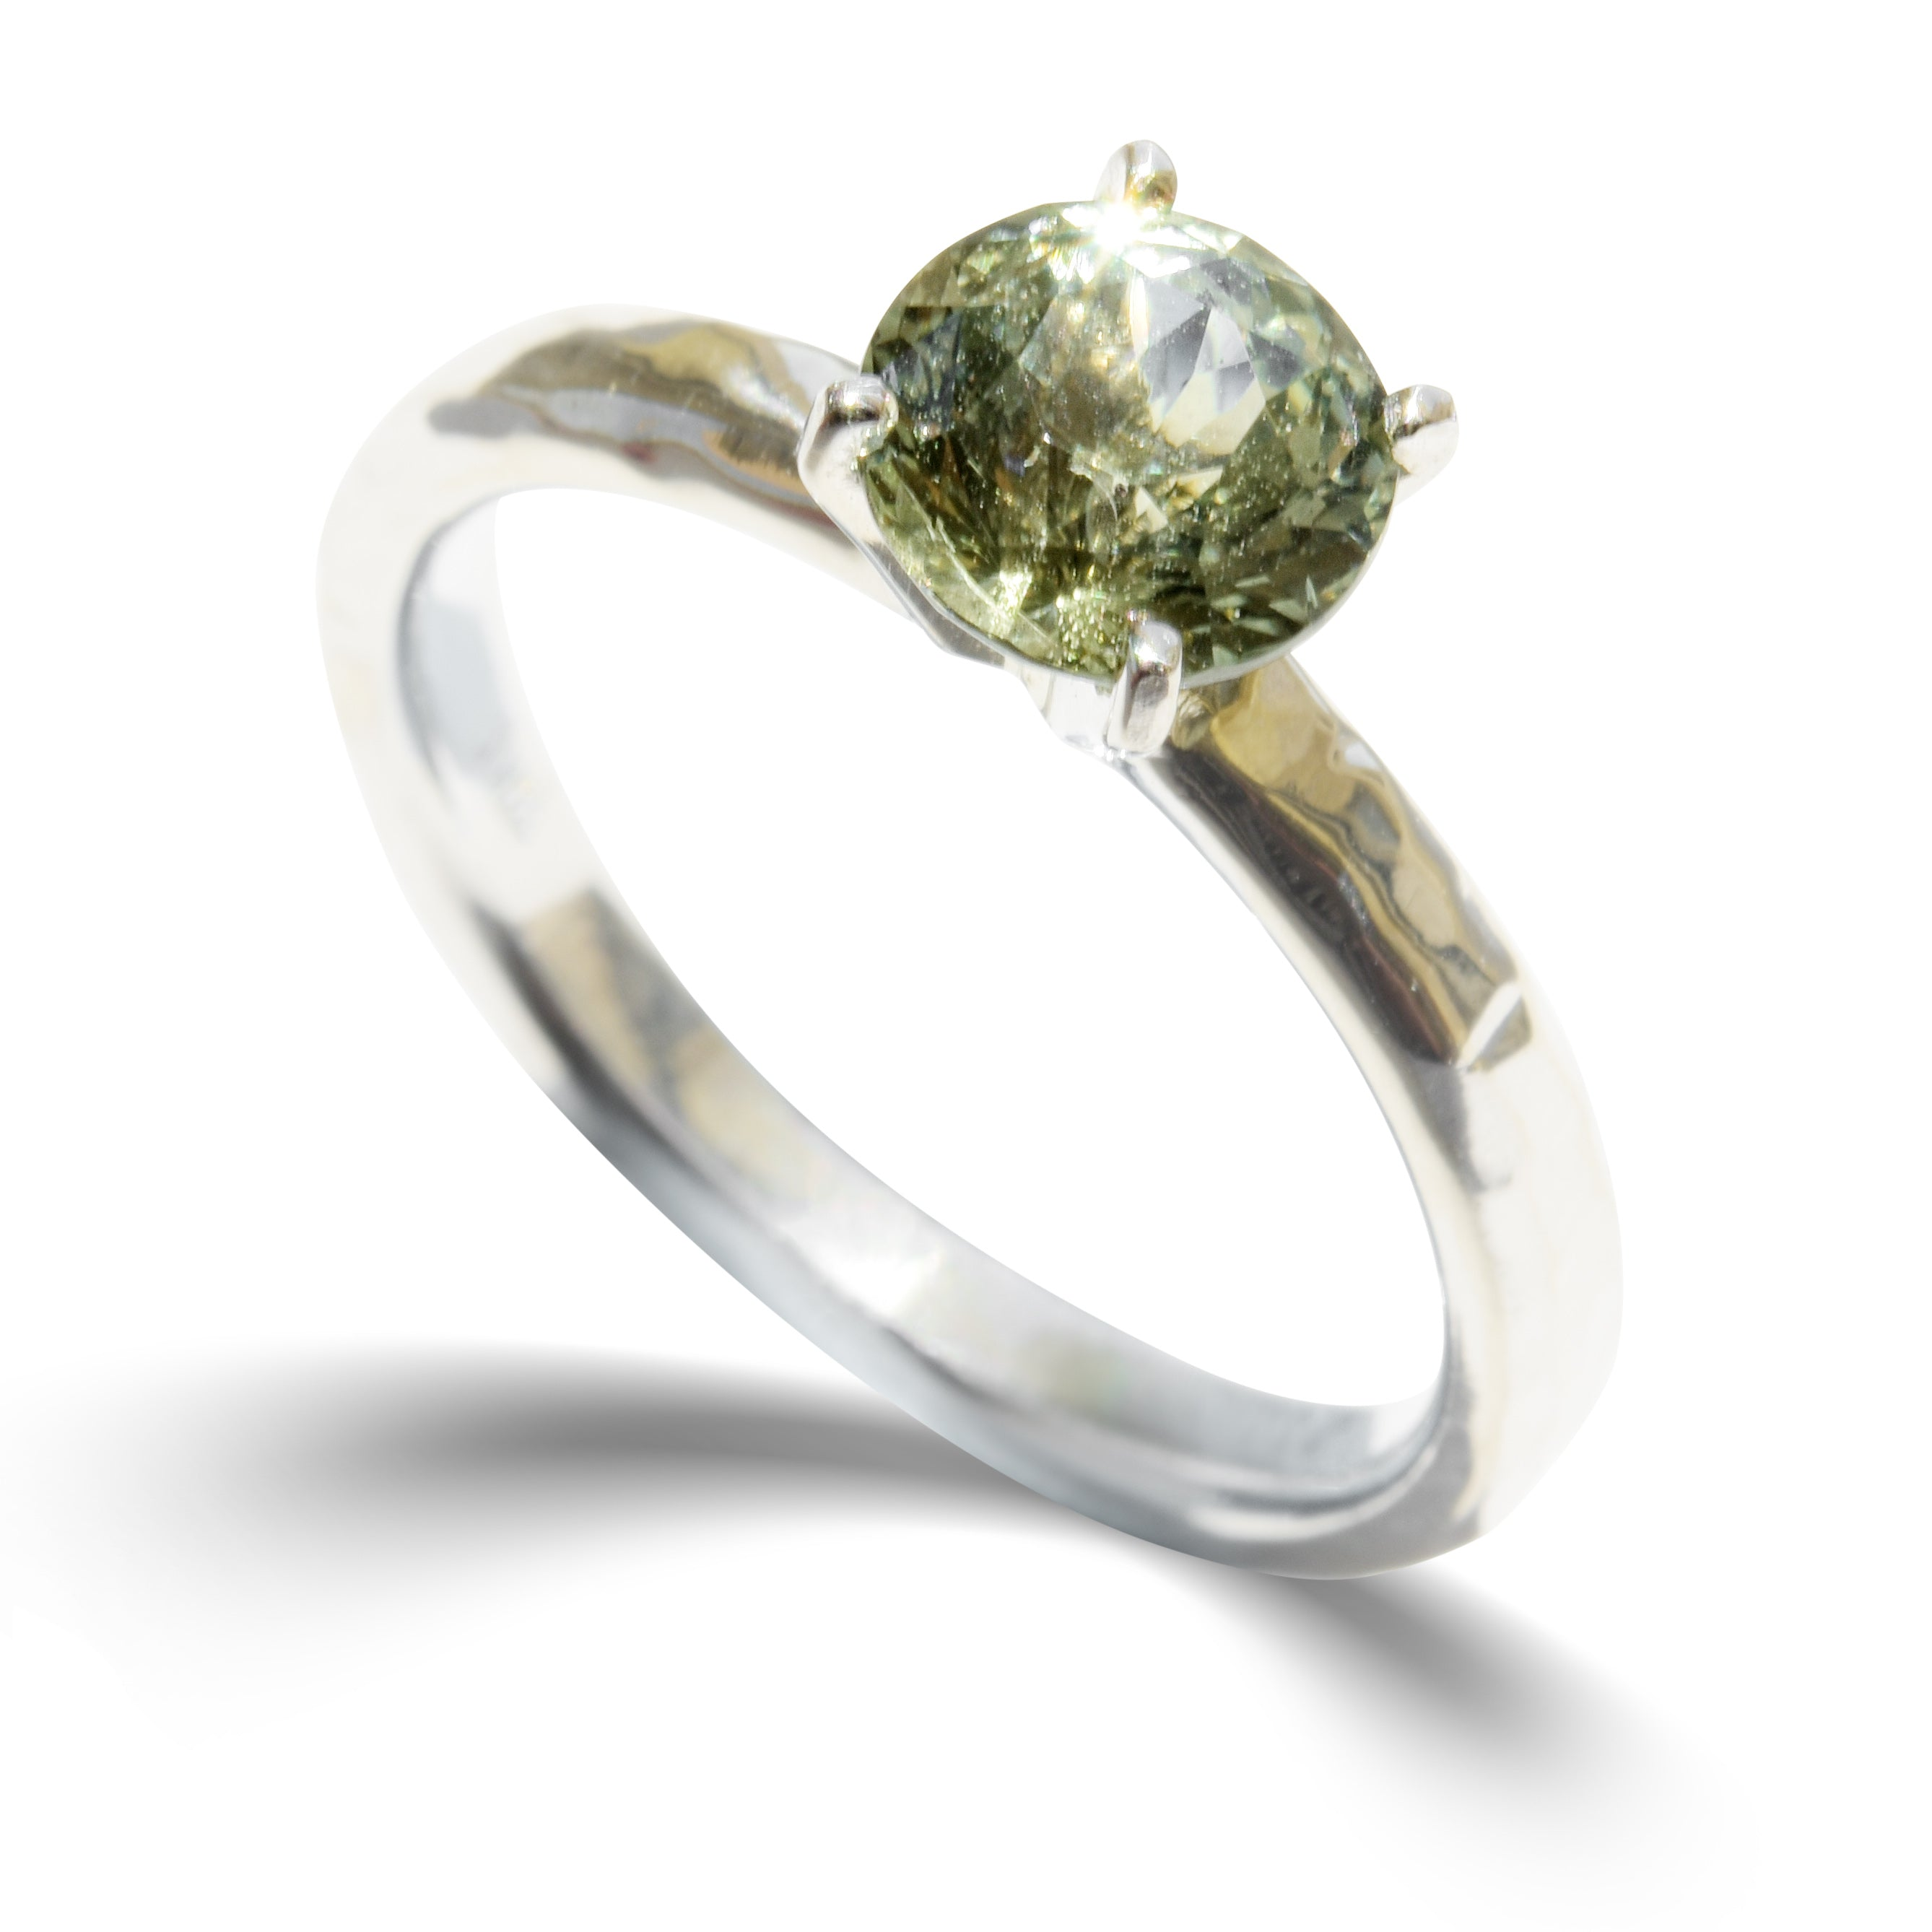 Hammered 14k white gold ring with a 7mm mermaid lime sapphire held by four prongs